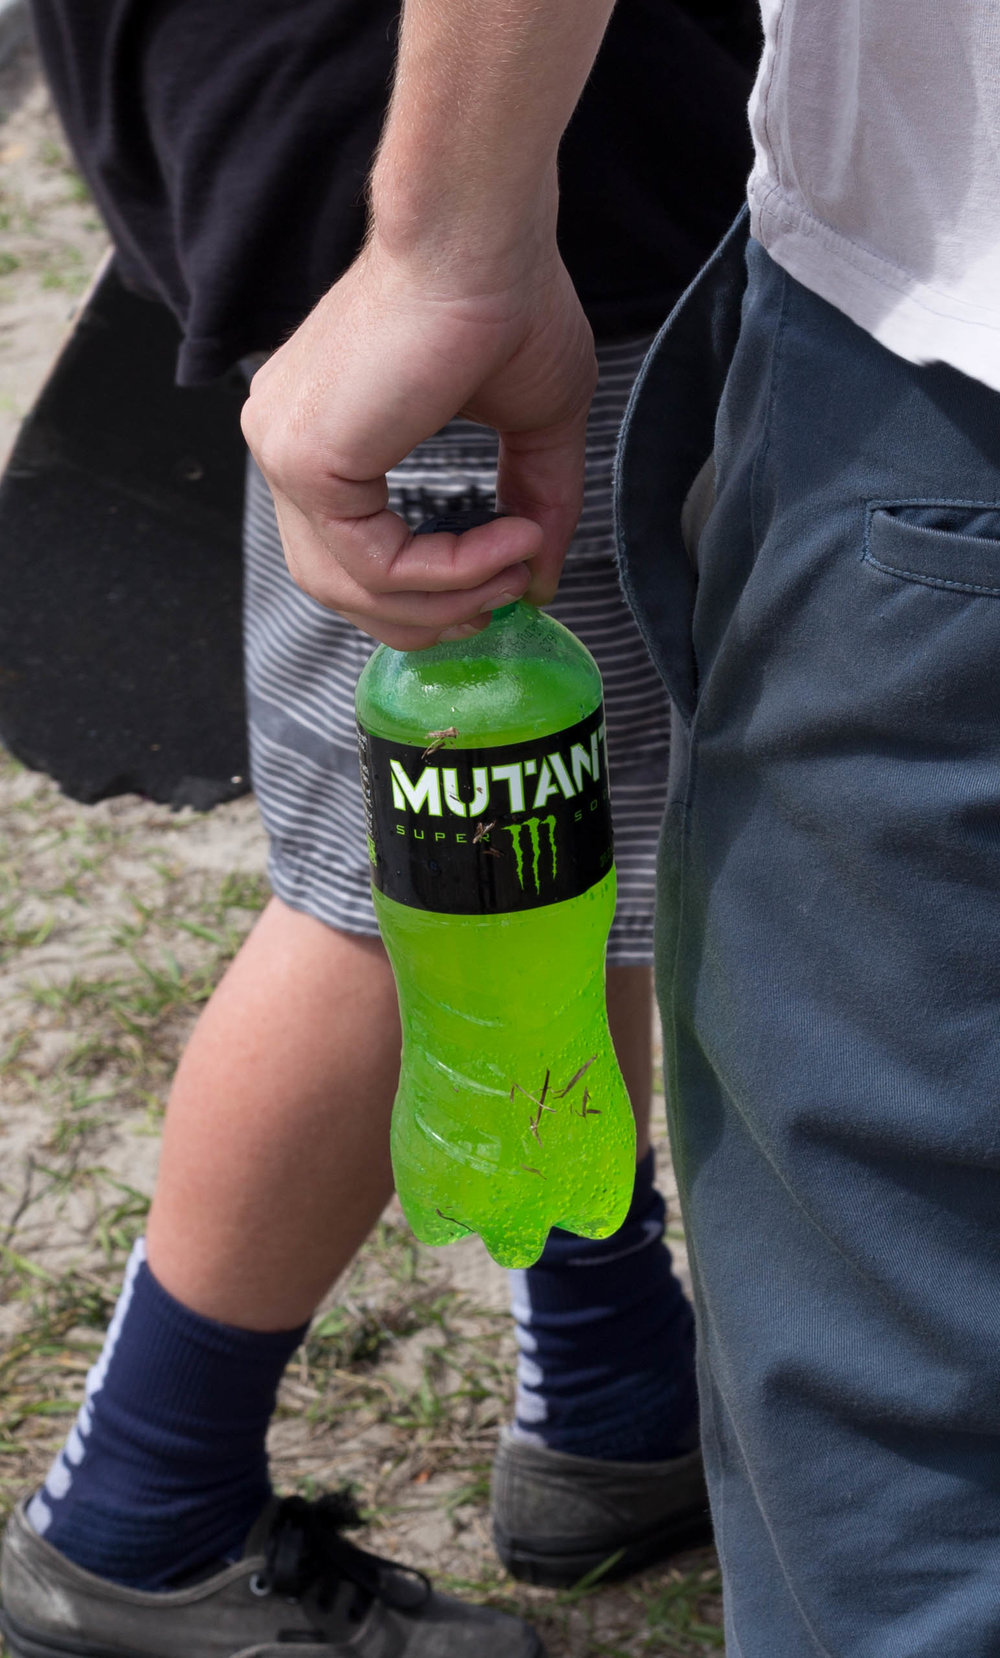 Almost everyone was repping Monster's new Mutant Super Soda!